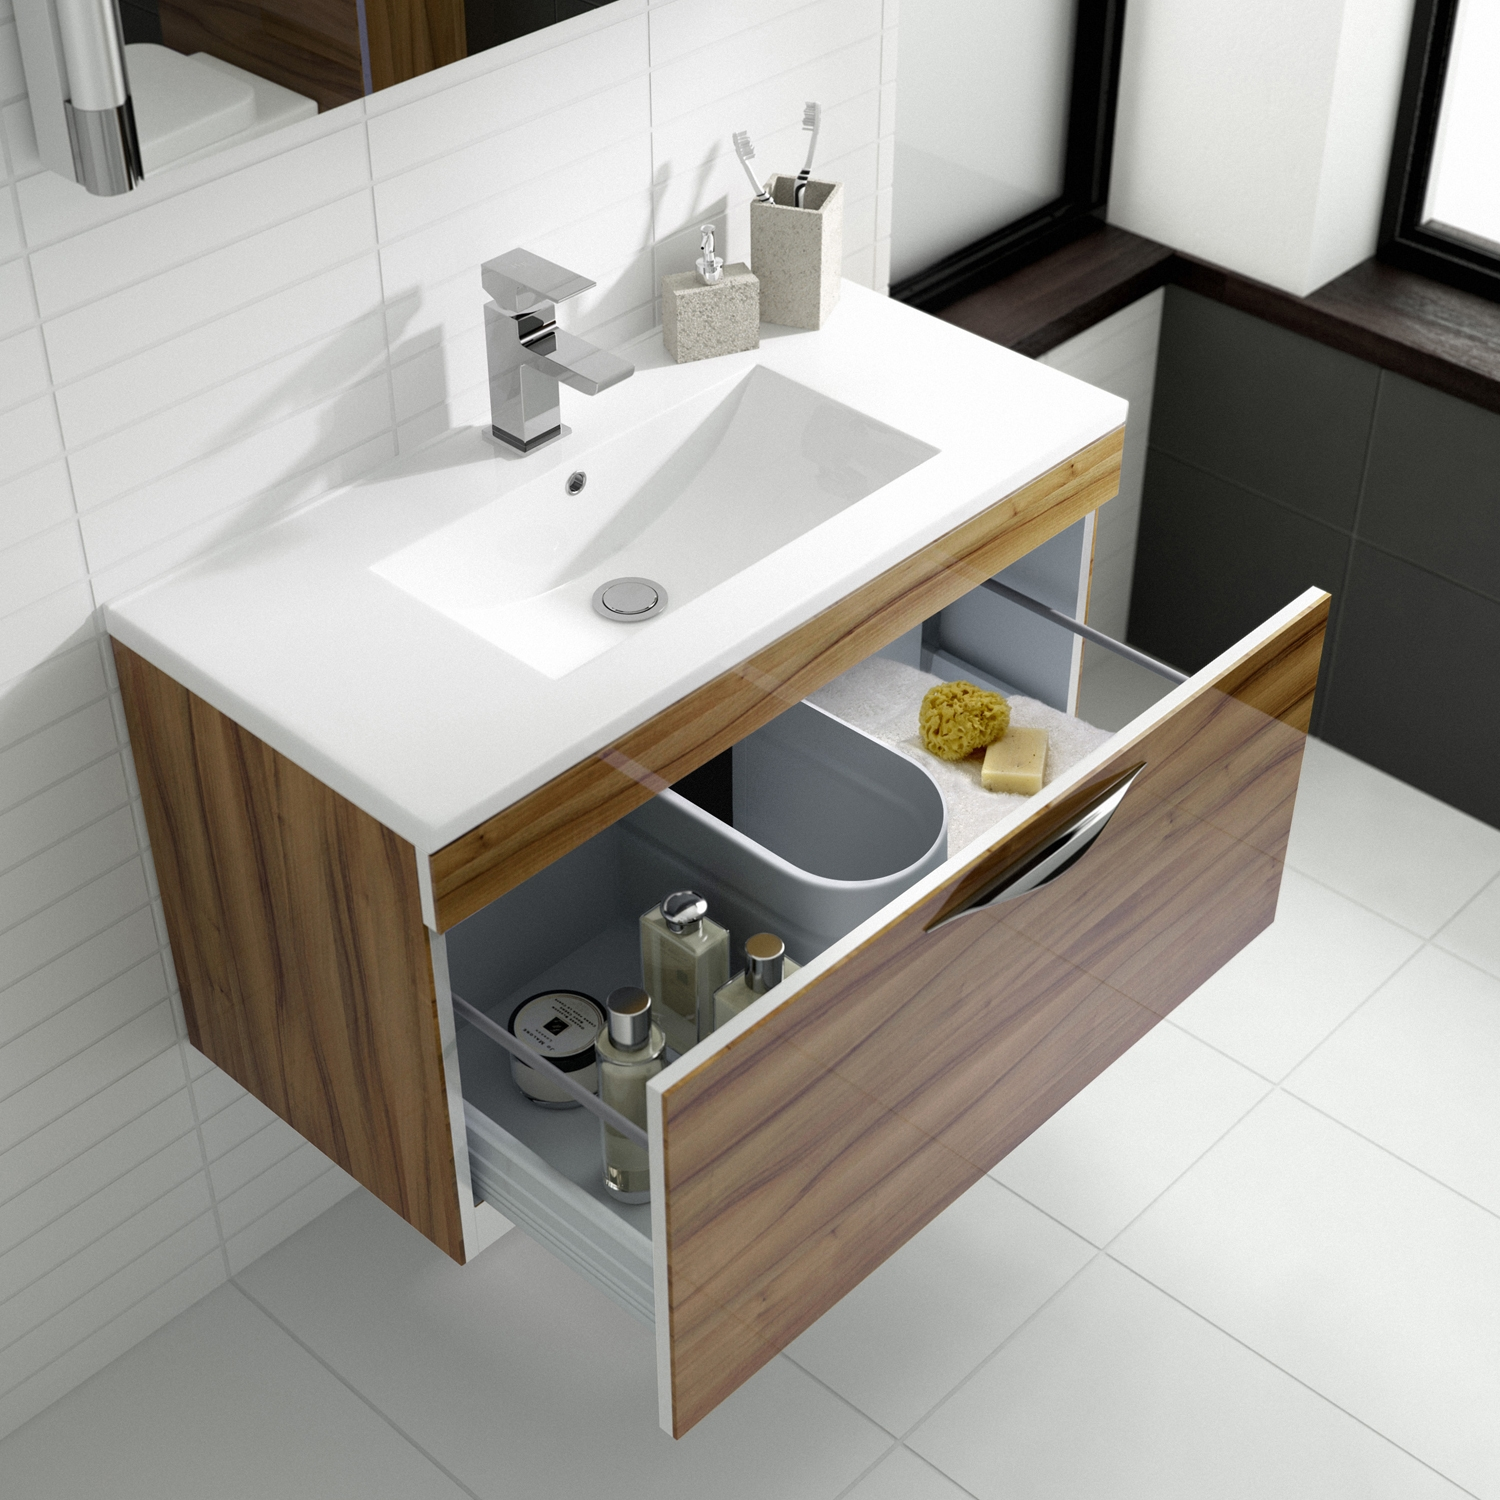 Hudson Reed Memoir Wall Mounted Vanity Unit with Minimalist Basin - 800mm W - Gloss Walnut